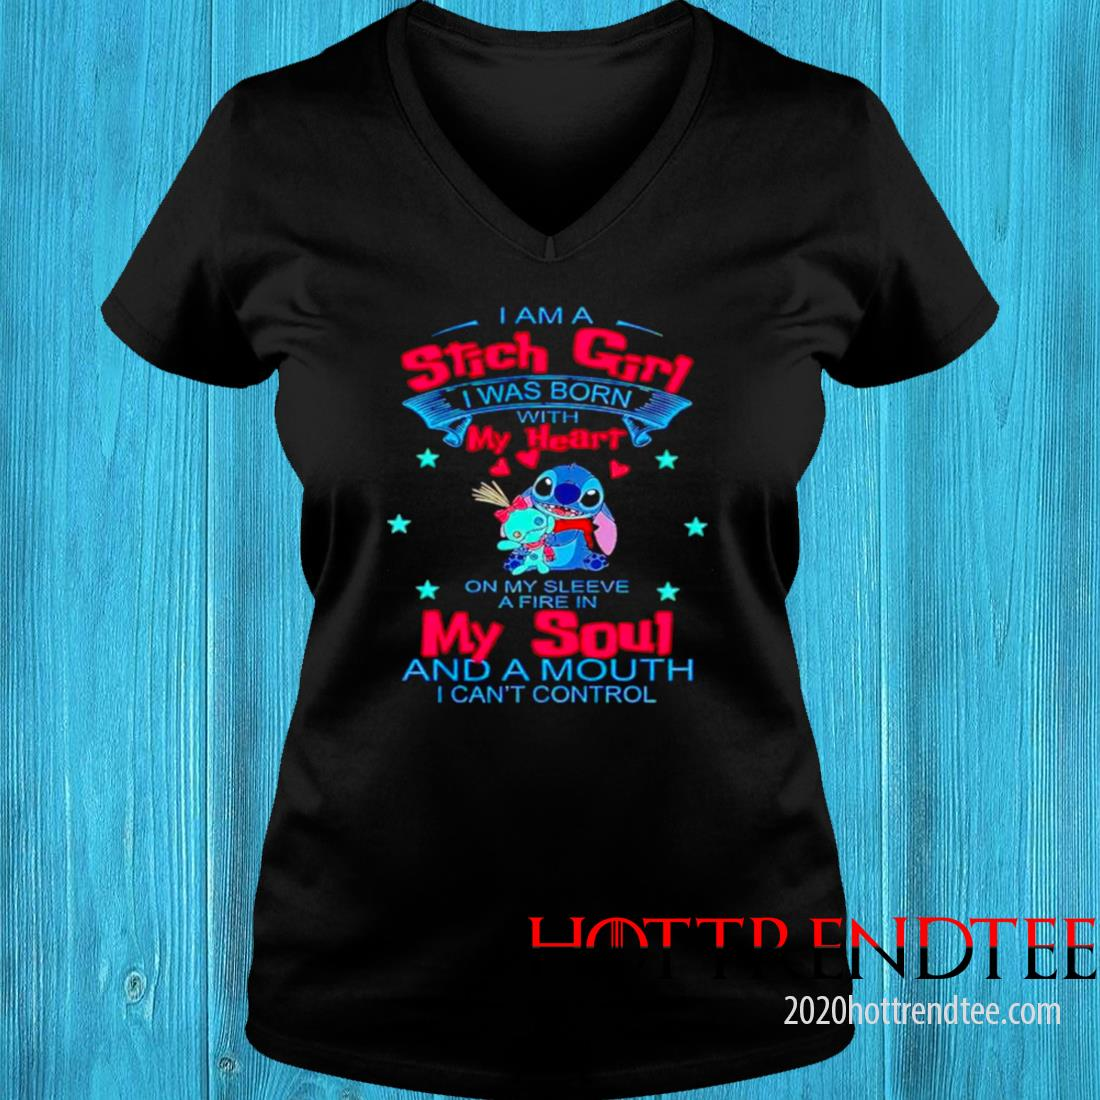 I Am A Stitch Girl I Was Born With My Heart On My Sleeve A Fire In My Soul Shirt v-neck tee